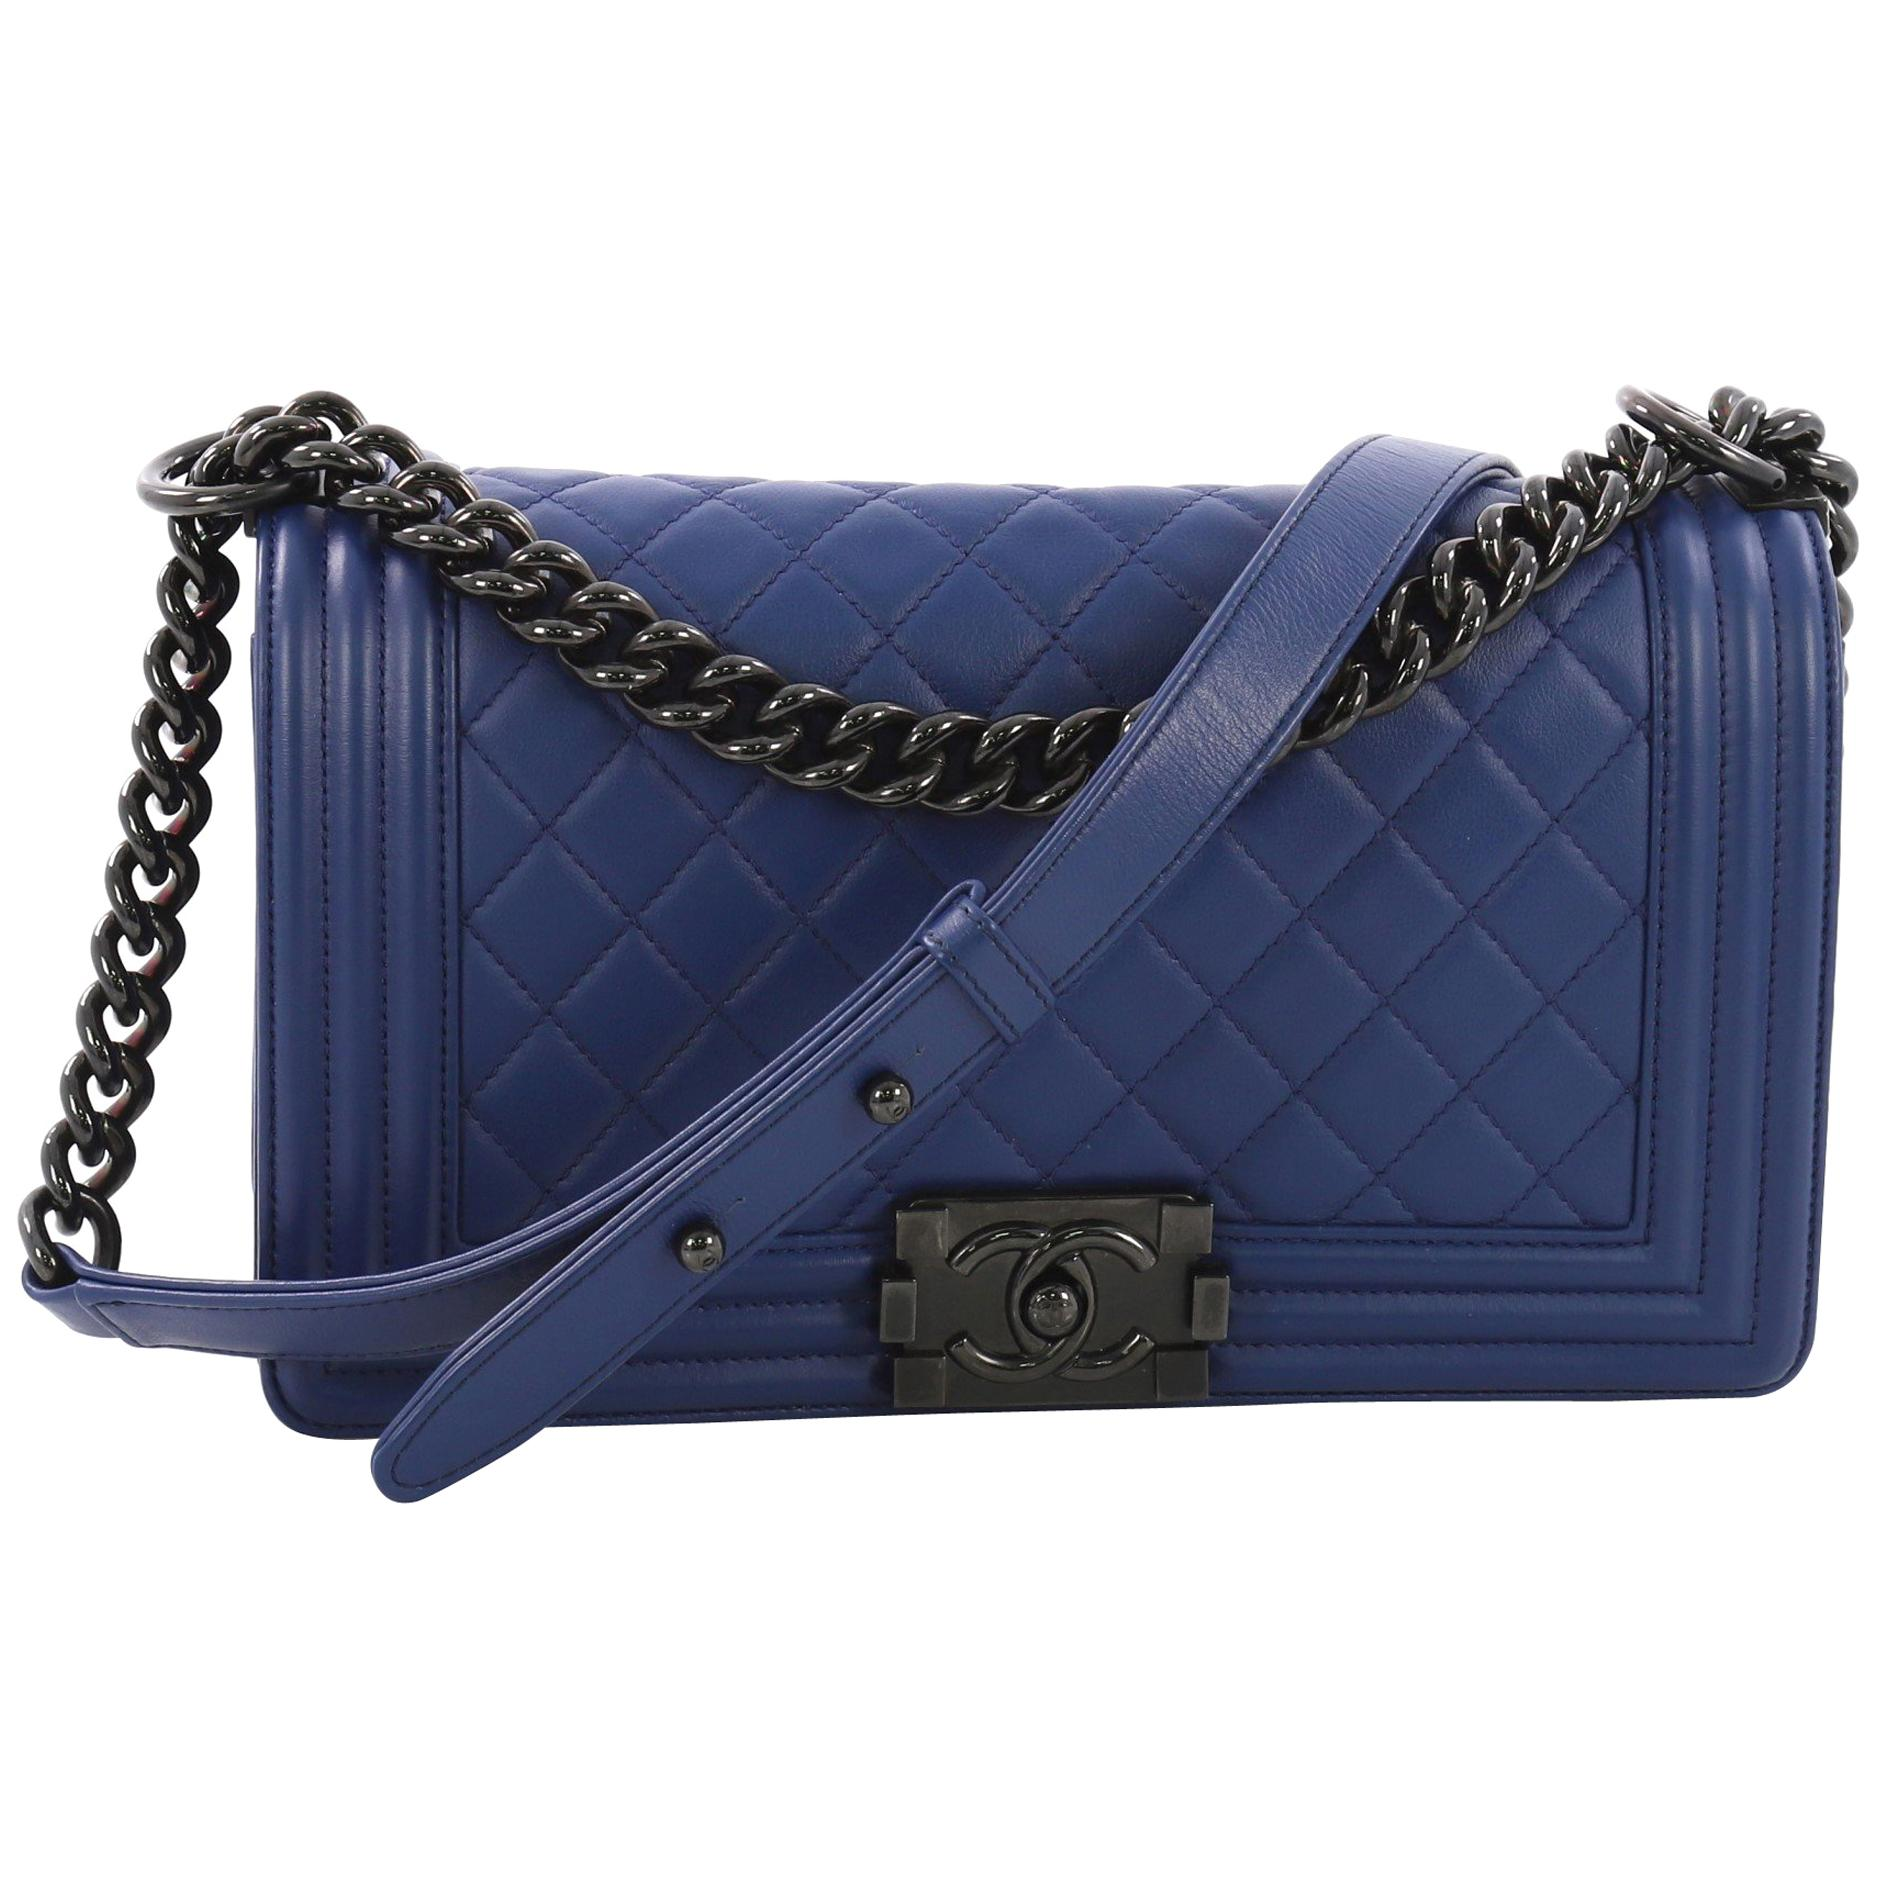 e741f172552b Chanel Boy Bags - 226 For Sale on 1stdibs